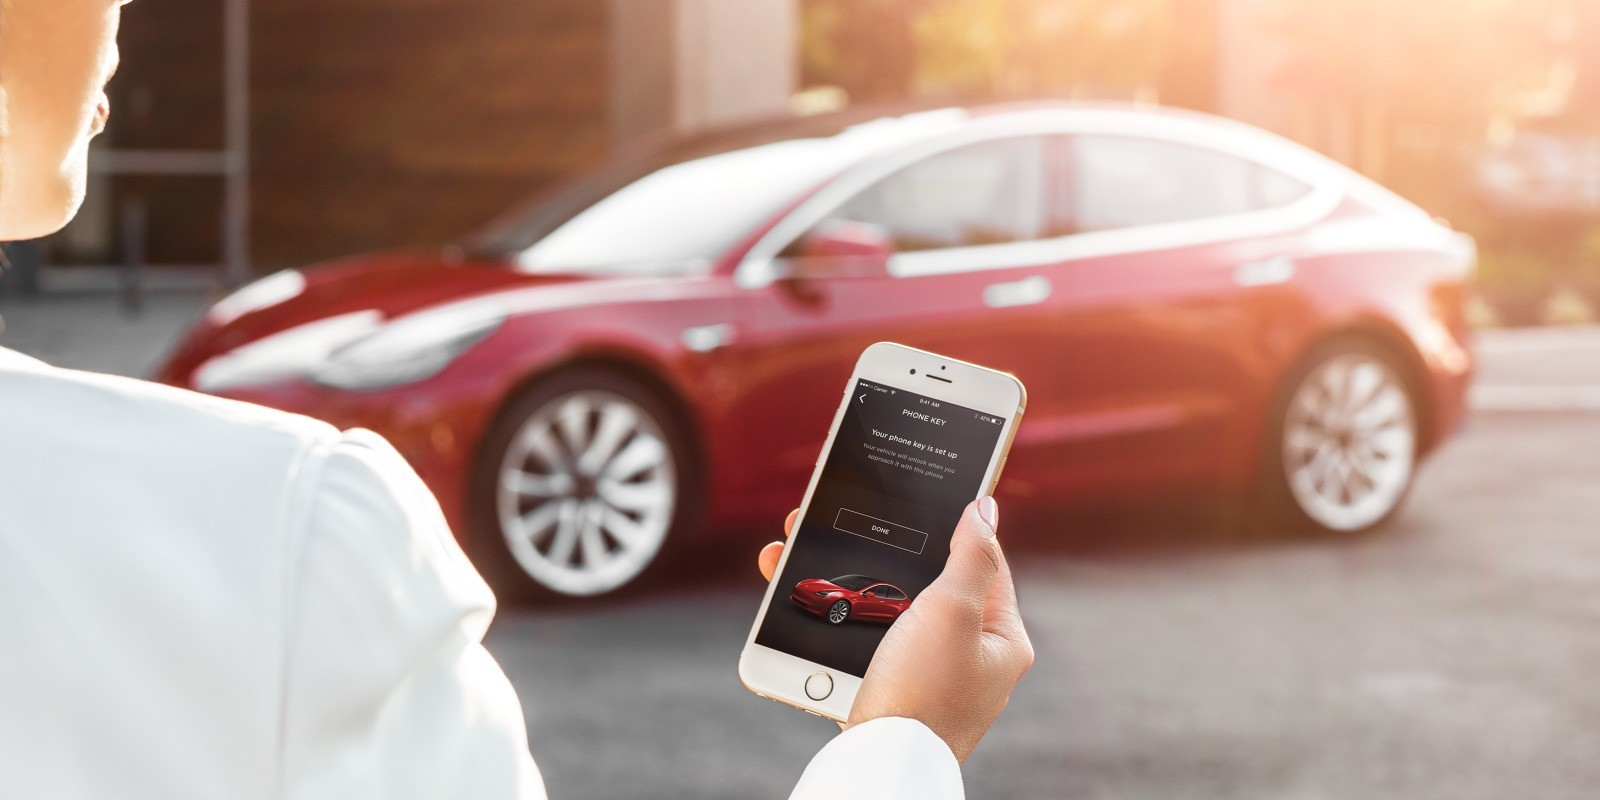 Tesla releases new Model 3 pictures to show its key card and iPhone-based unlocking system